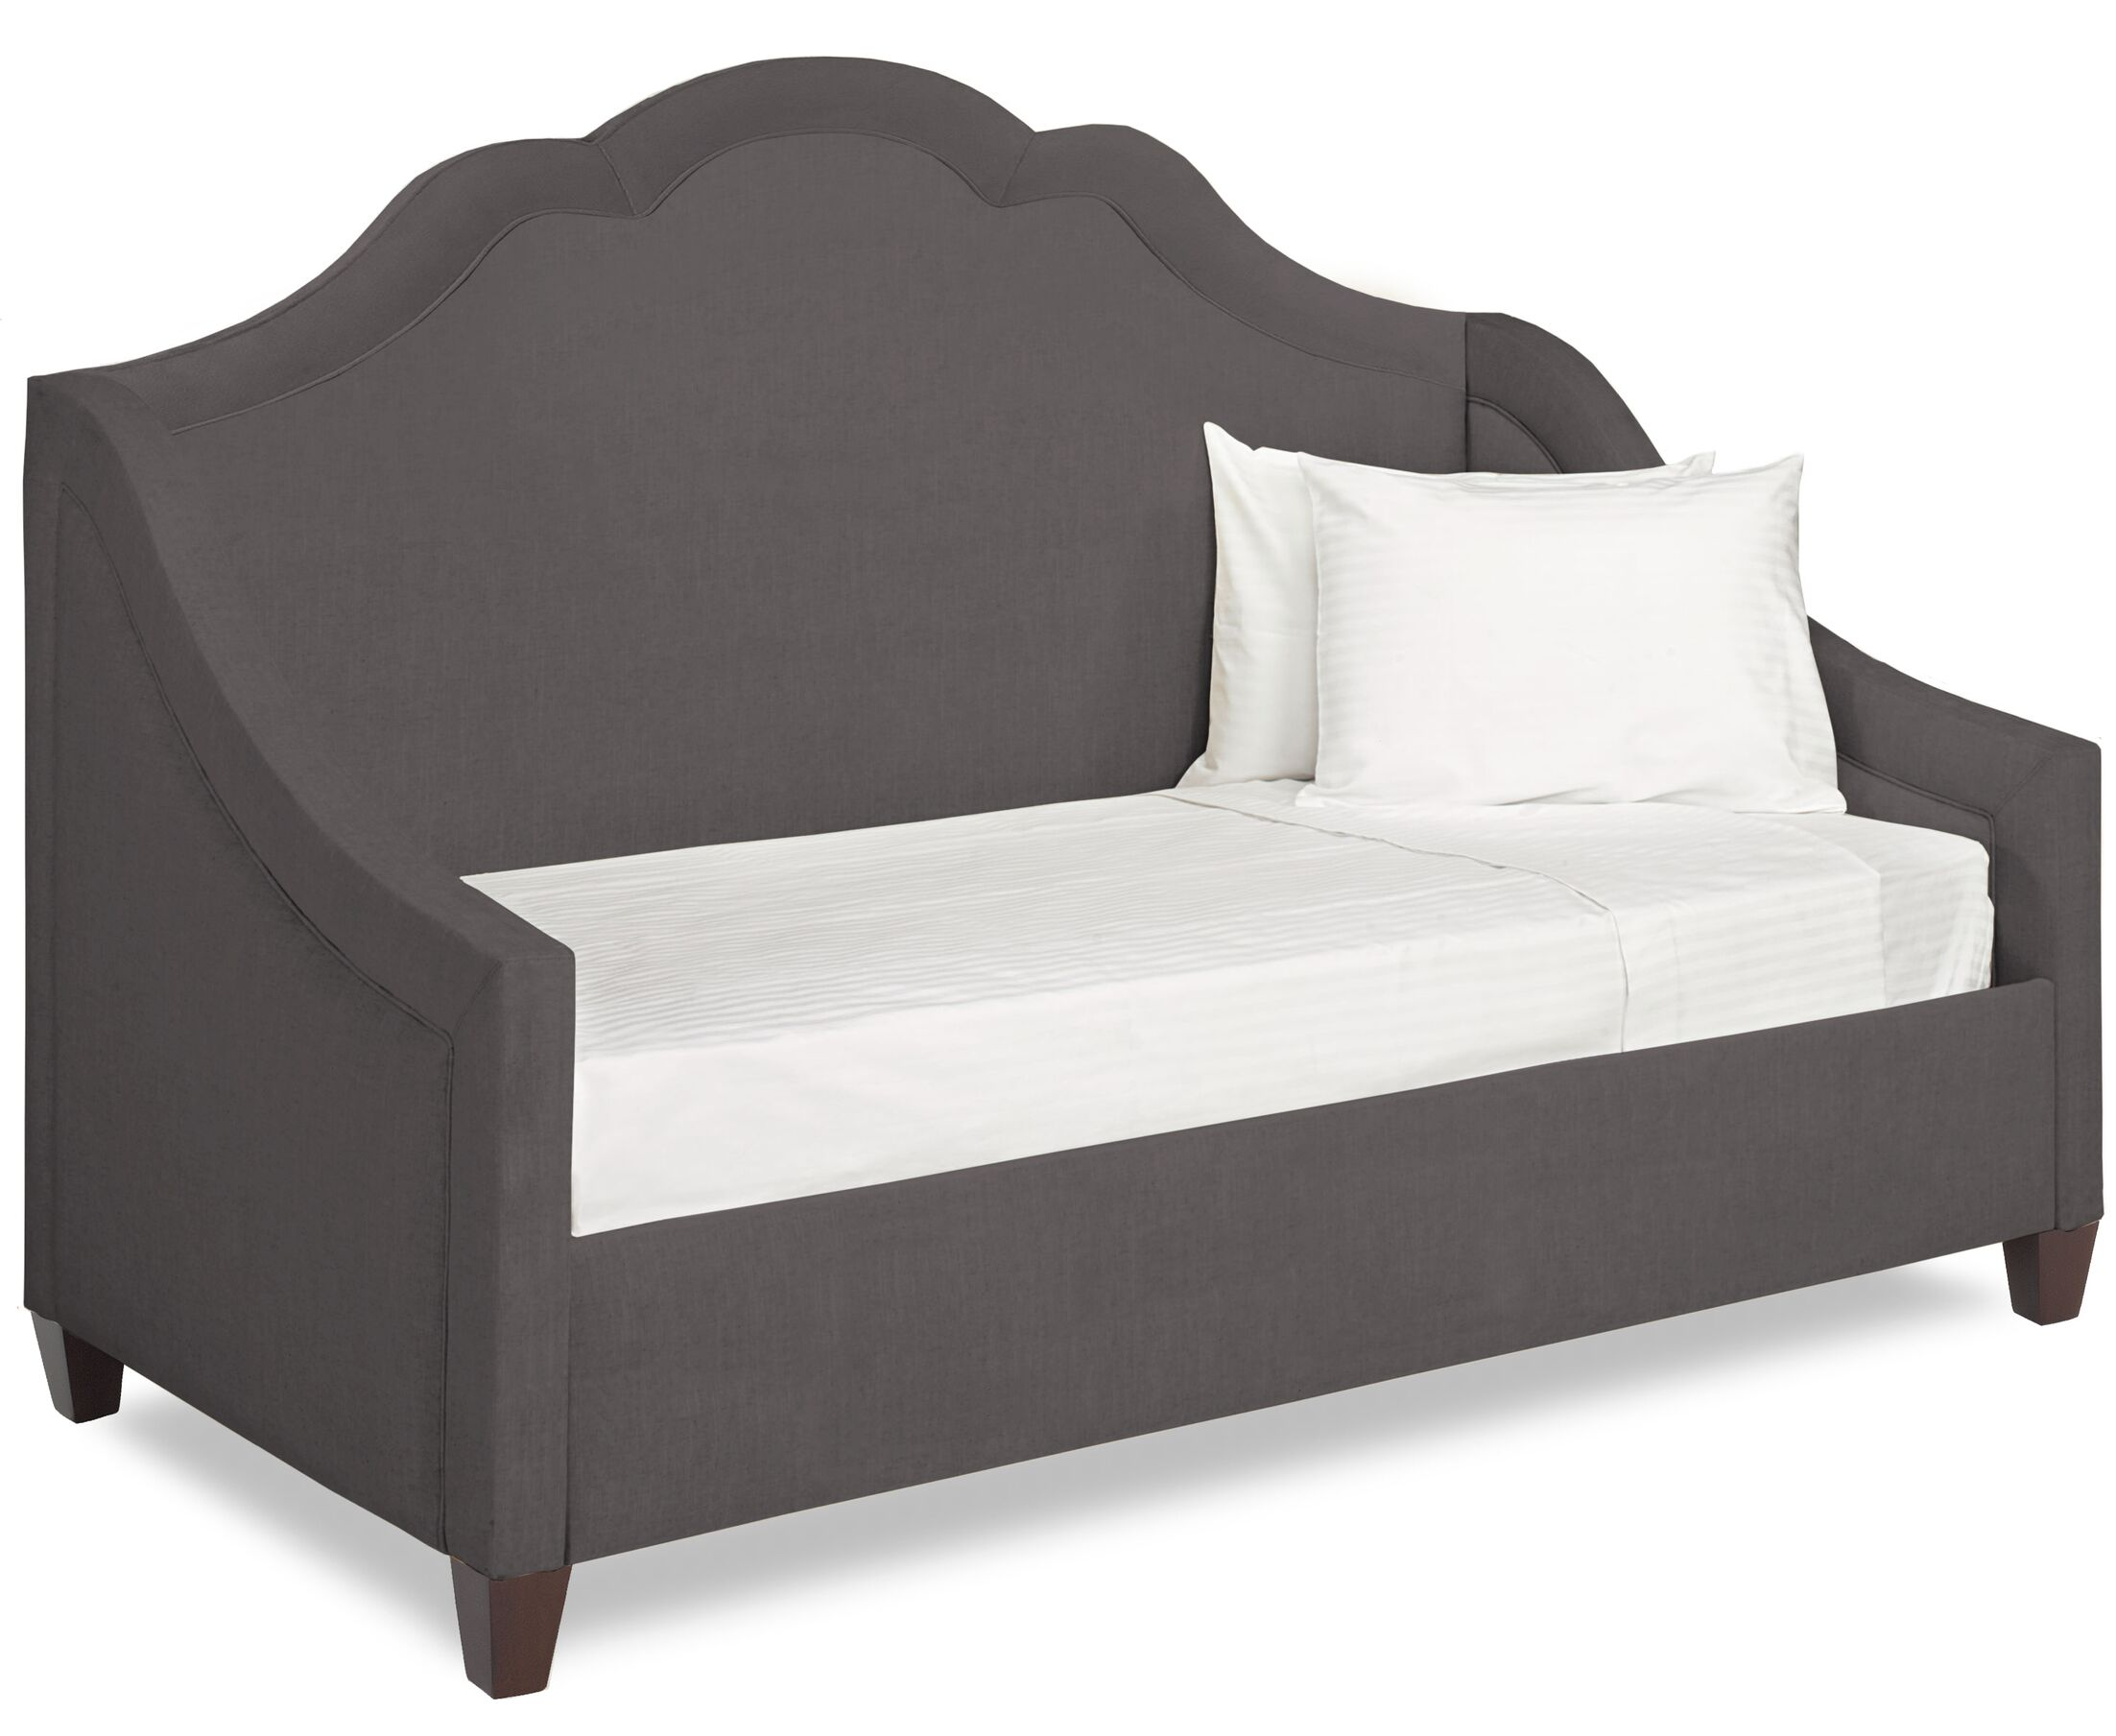 Dreamtime Daybed with Mattress Color: Dark Ash, Size: Twin XL